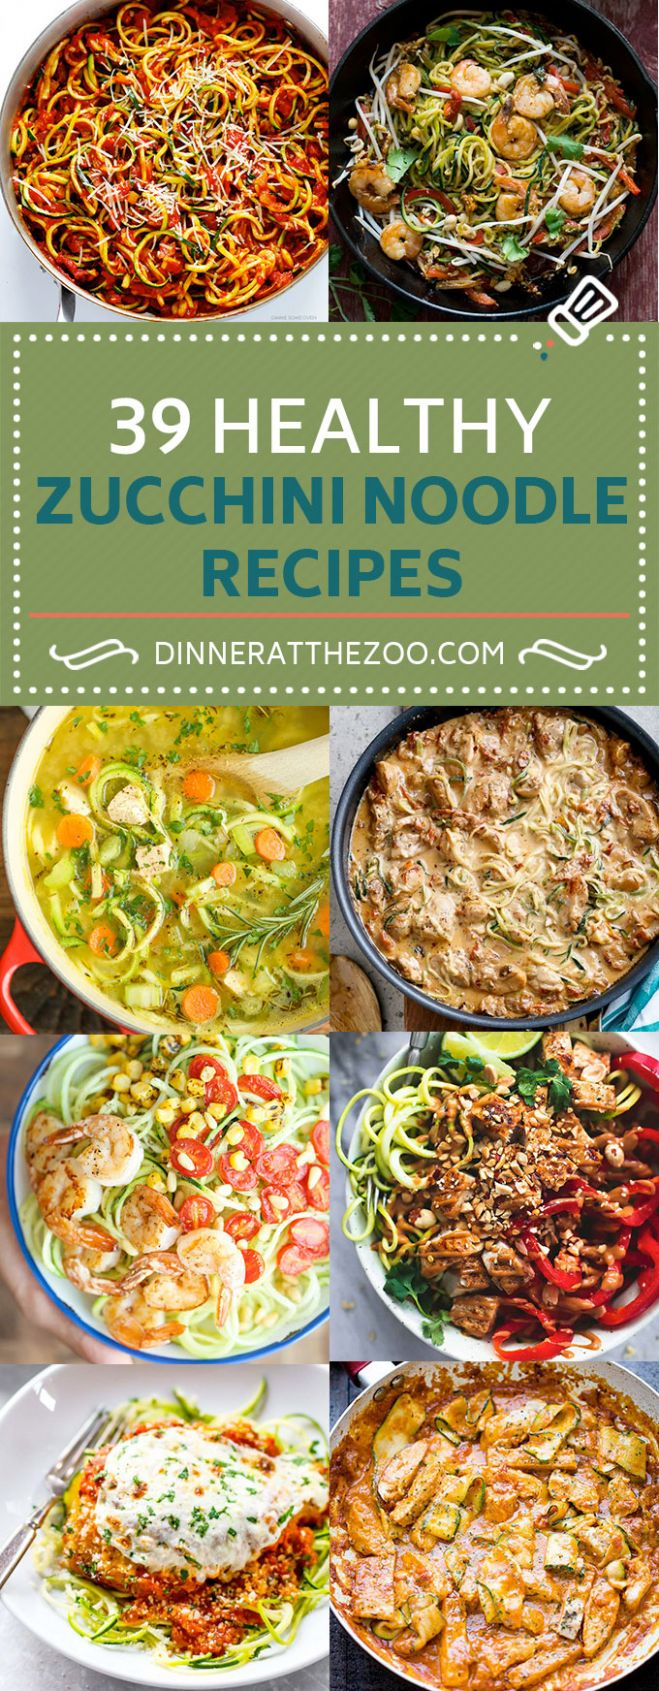 8 Healthy Zoodle (Zucchini Noodle) Recipes - Dinner at the Zoo